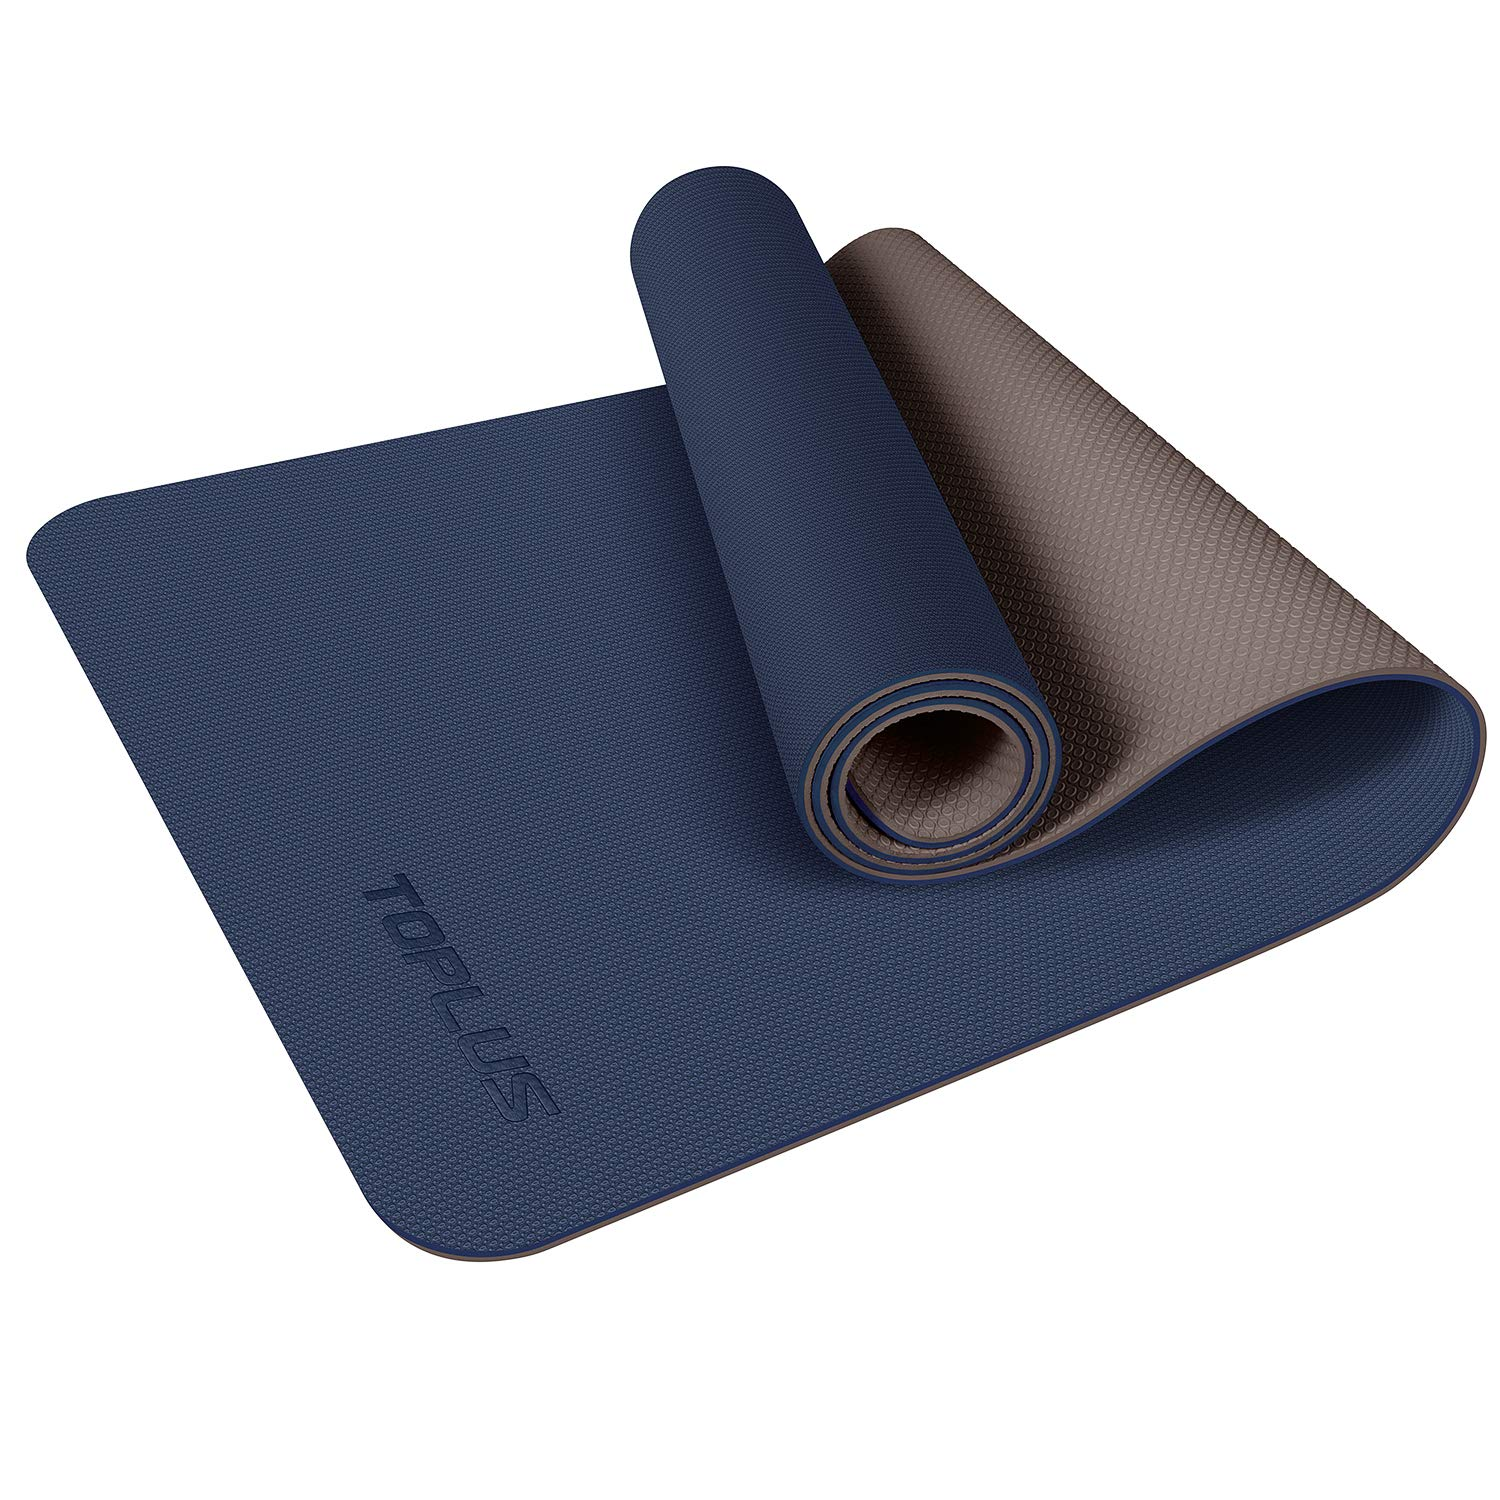 TOPLUS Yoga Mat, Non-Slip Yoga Mat Eco Friendly Exercise & Workout Mat with Carrying Strap - for Yoga, Pilates and Floor Exercises(1/4 inch-1/8 inch)